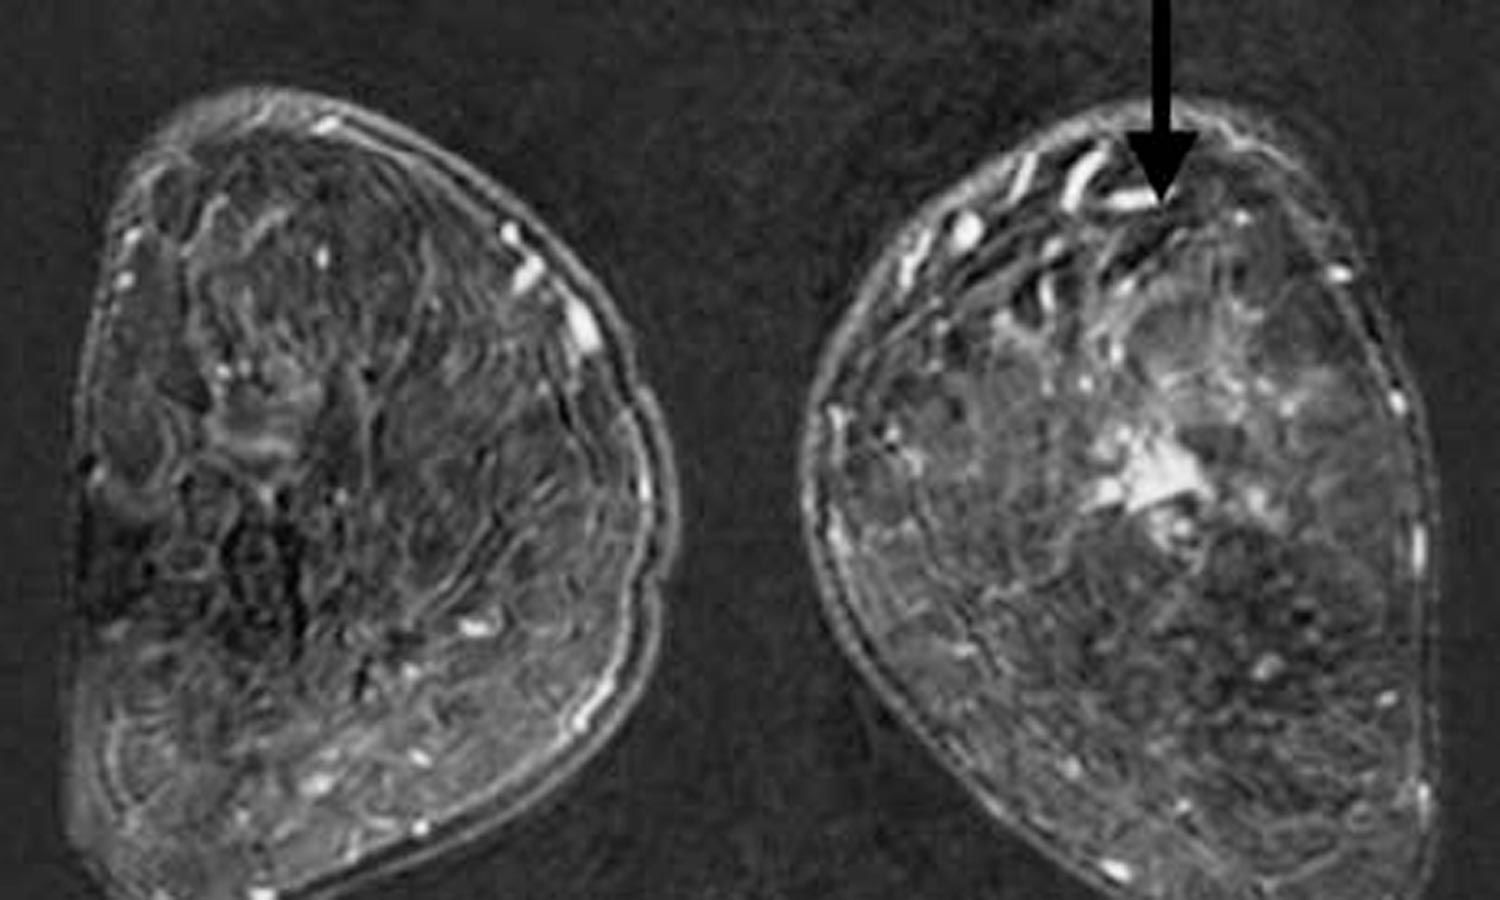 Pre-operative MRI may identify additional breast cancer sites for better management